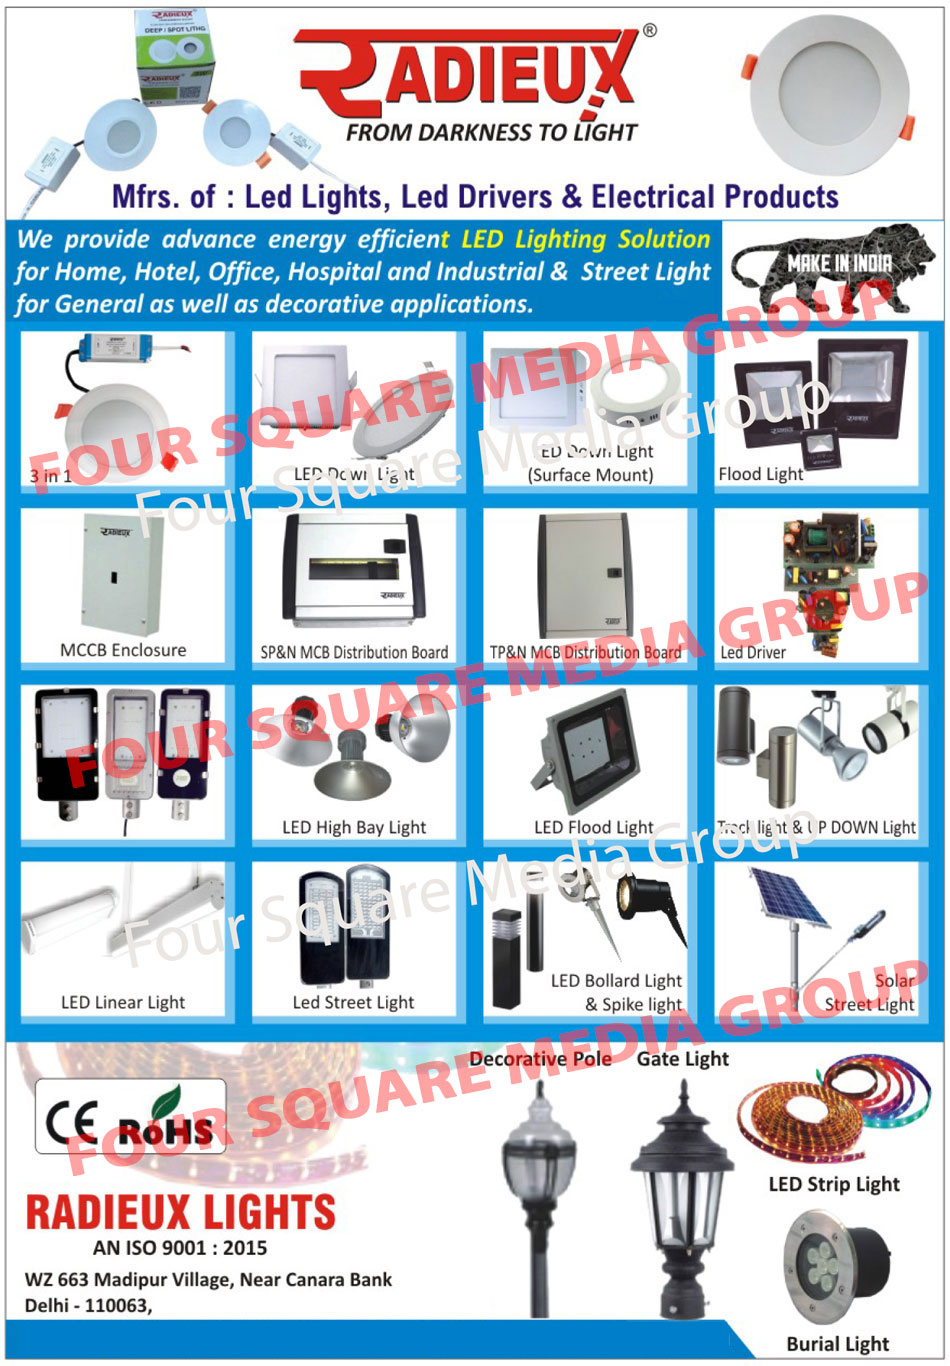 Led Lights, Led Conceal Lights, Led Tube Lights, Led Down Lights, Led Downlights, Surface Mount Led Down Lights, Recess Led Panels, Recess Led Panel Lights, Surface Mount Led Panels, Surface Mount Led Panel Lights, MCCB Enclosures, SP MCB Distribution Boards, N MCB Distribution Boards, Led Drivers, Led Street Lights, Led High Bay Lights, Led Flood Lights, Track Lights, UP Down Lights, Led Linear Lights, Led Spot Lights, Led Foot Lights, Led Bollard Lights, Led Spike Lights, Solar Street Lights, Decorative Pole Lights, Gate Lights, Burial Lights, Led Strip Lights, TP Distribution Boards, Led Electrical Products